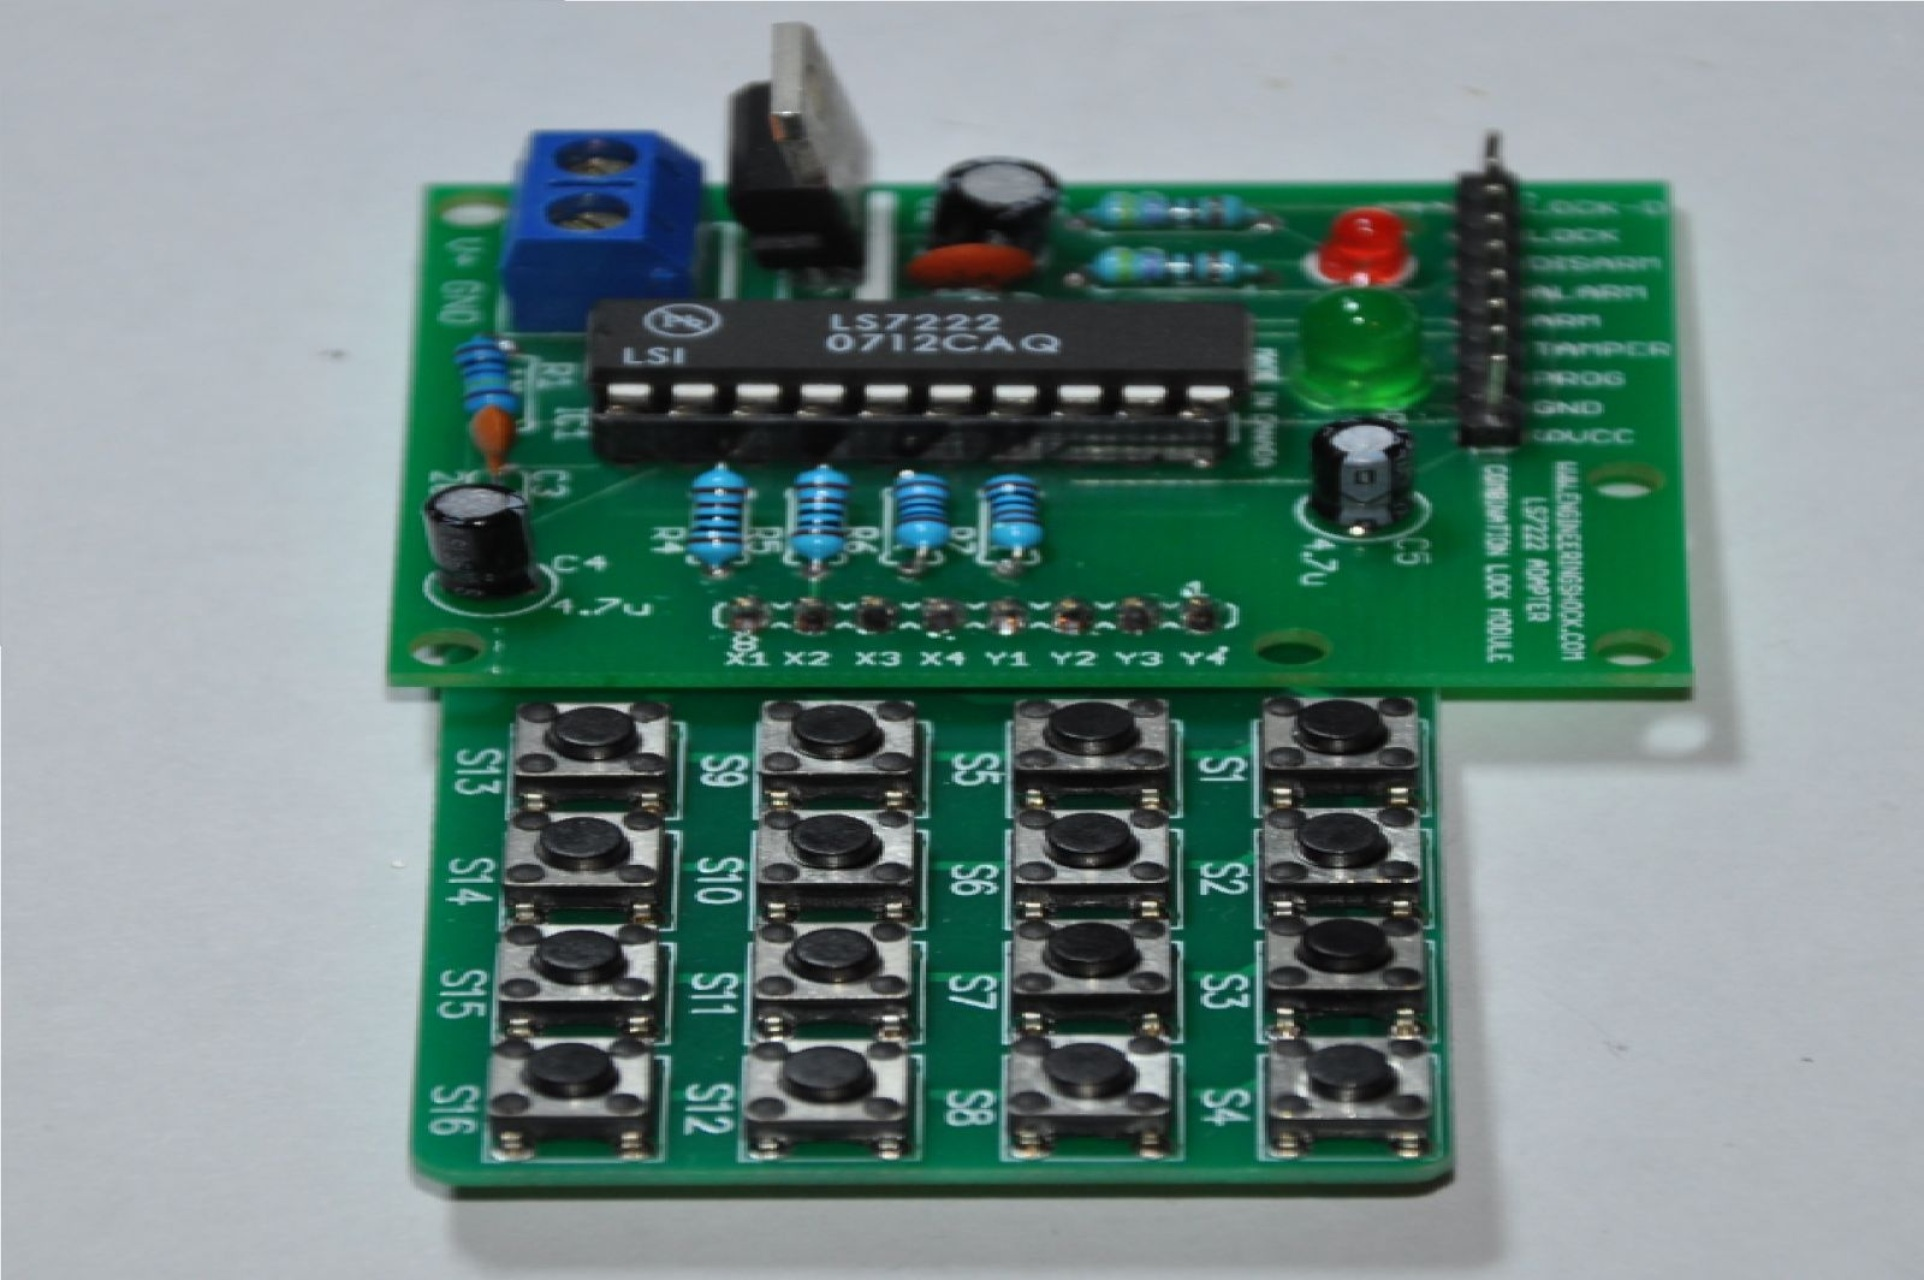 Ls7222 Keypad Mod Engineeringshock Electronics Electronic Circuit New Combination Lock Module Featuring The W 16 Button